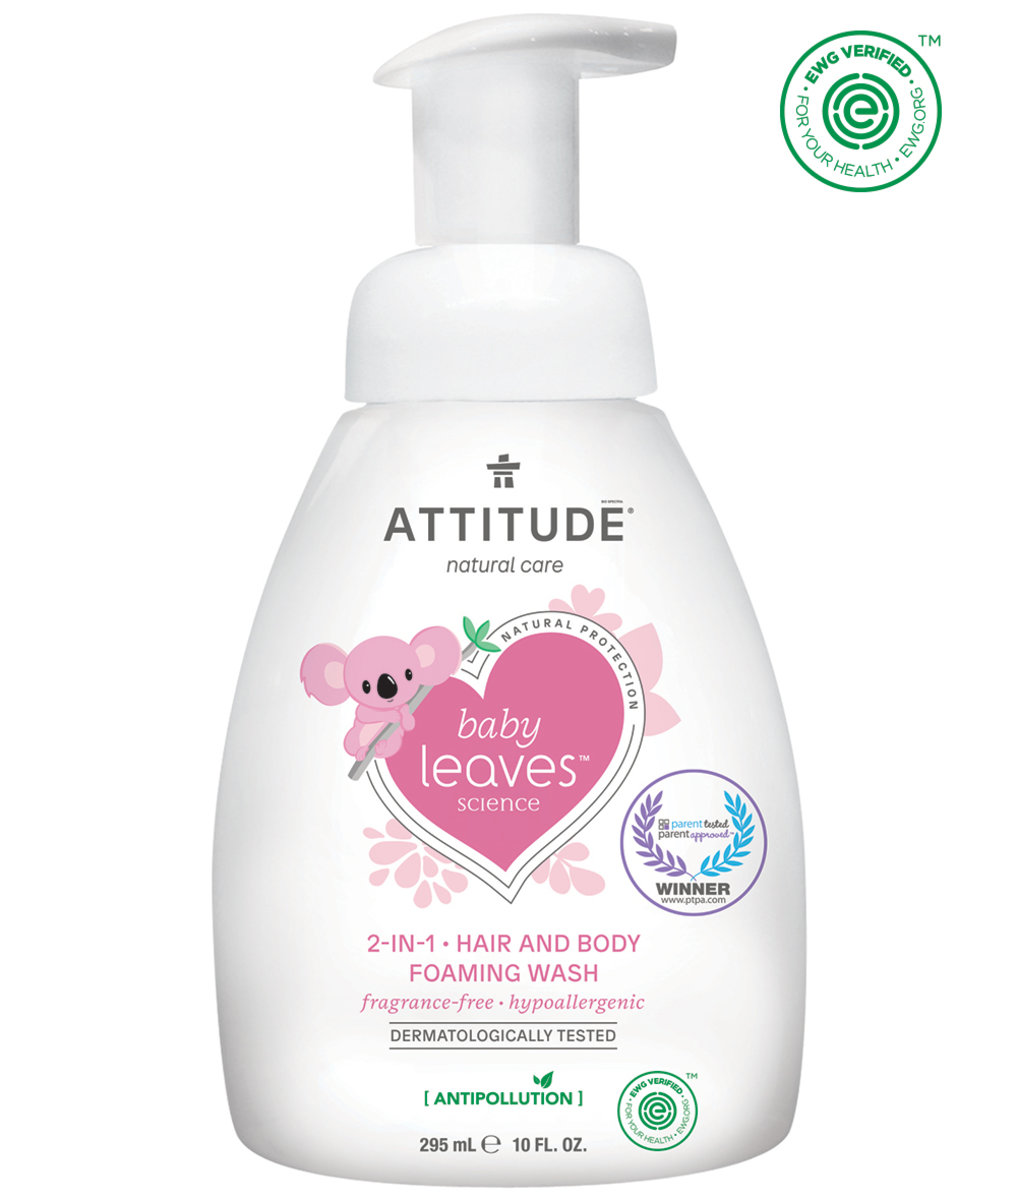 Baby Leaves 2-in-1 Hair and Body Foaming Wash Fragrance-free Natural protection 295mL